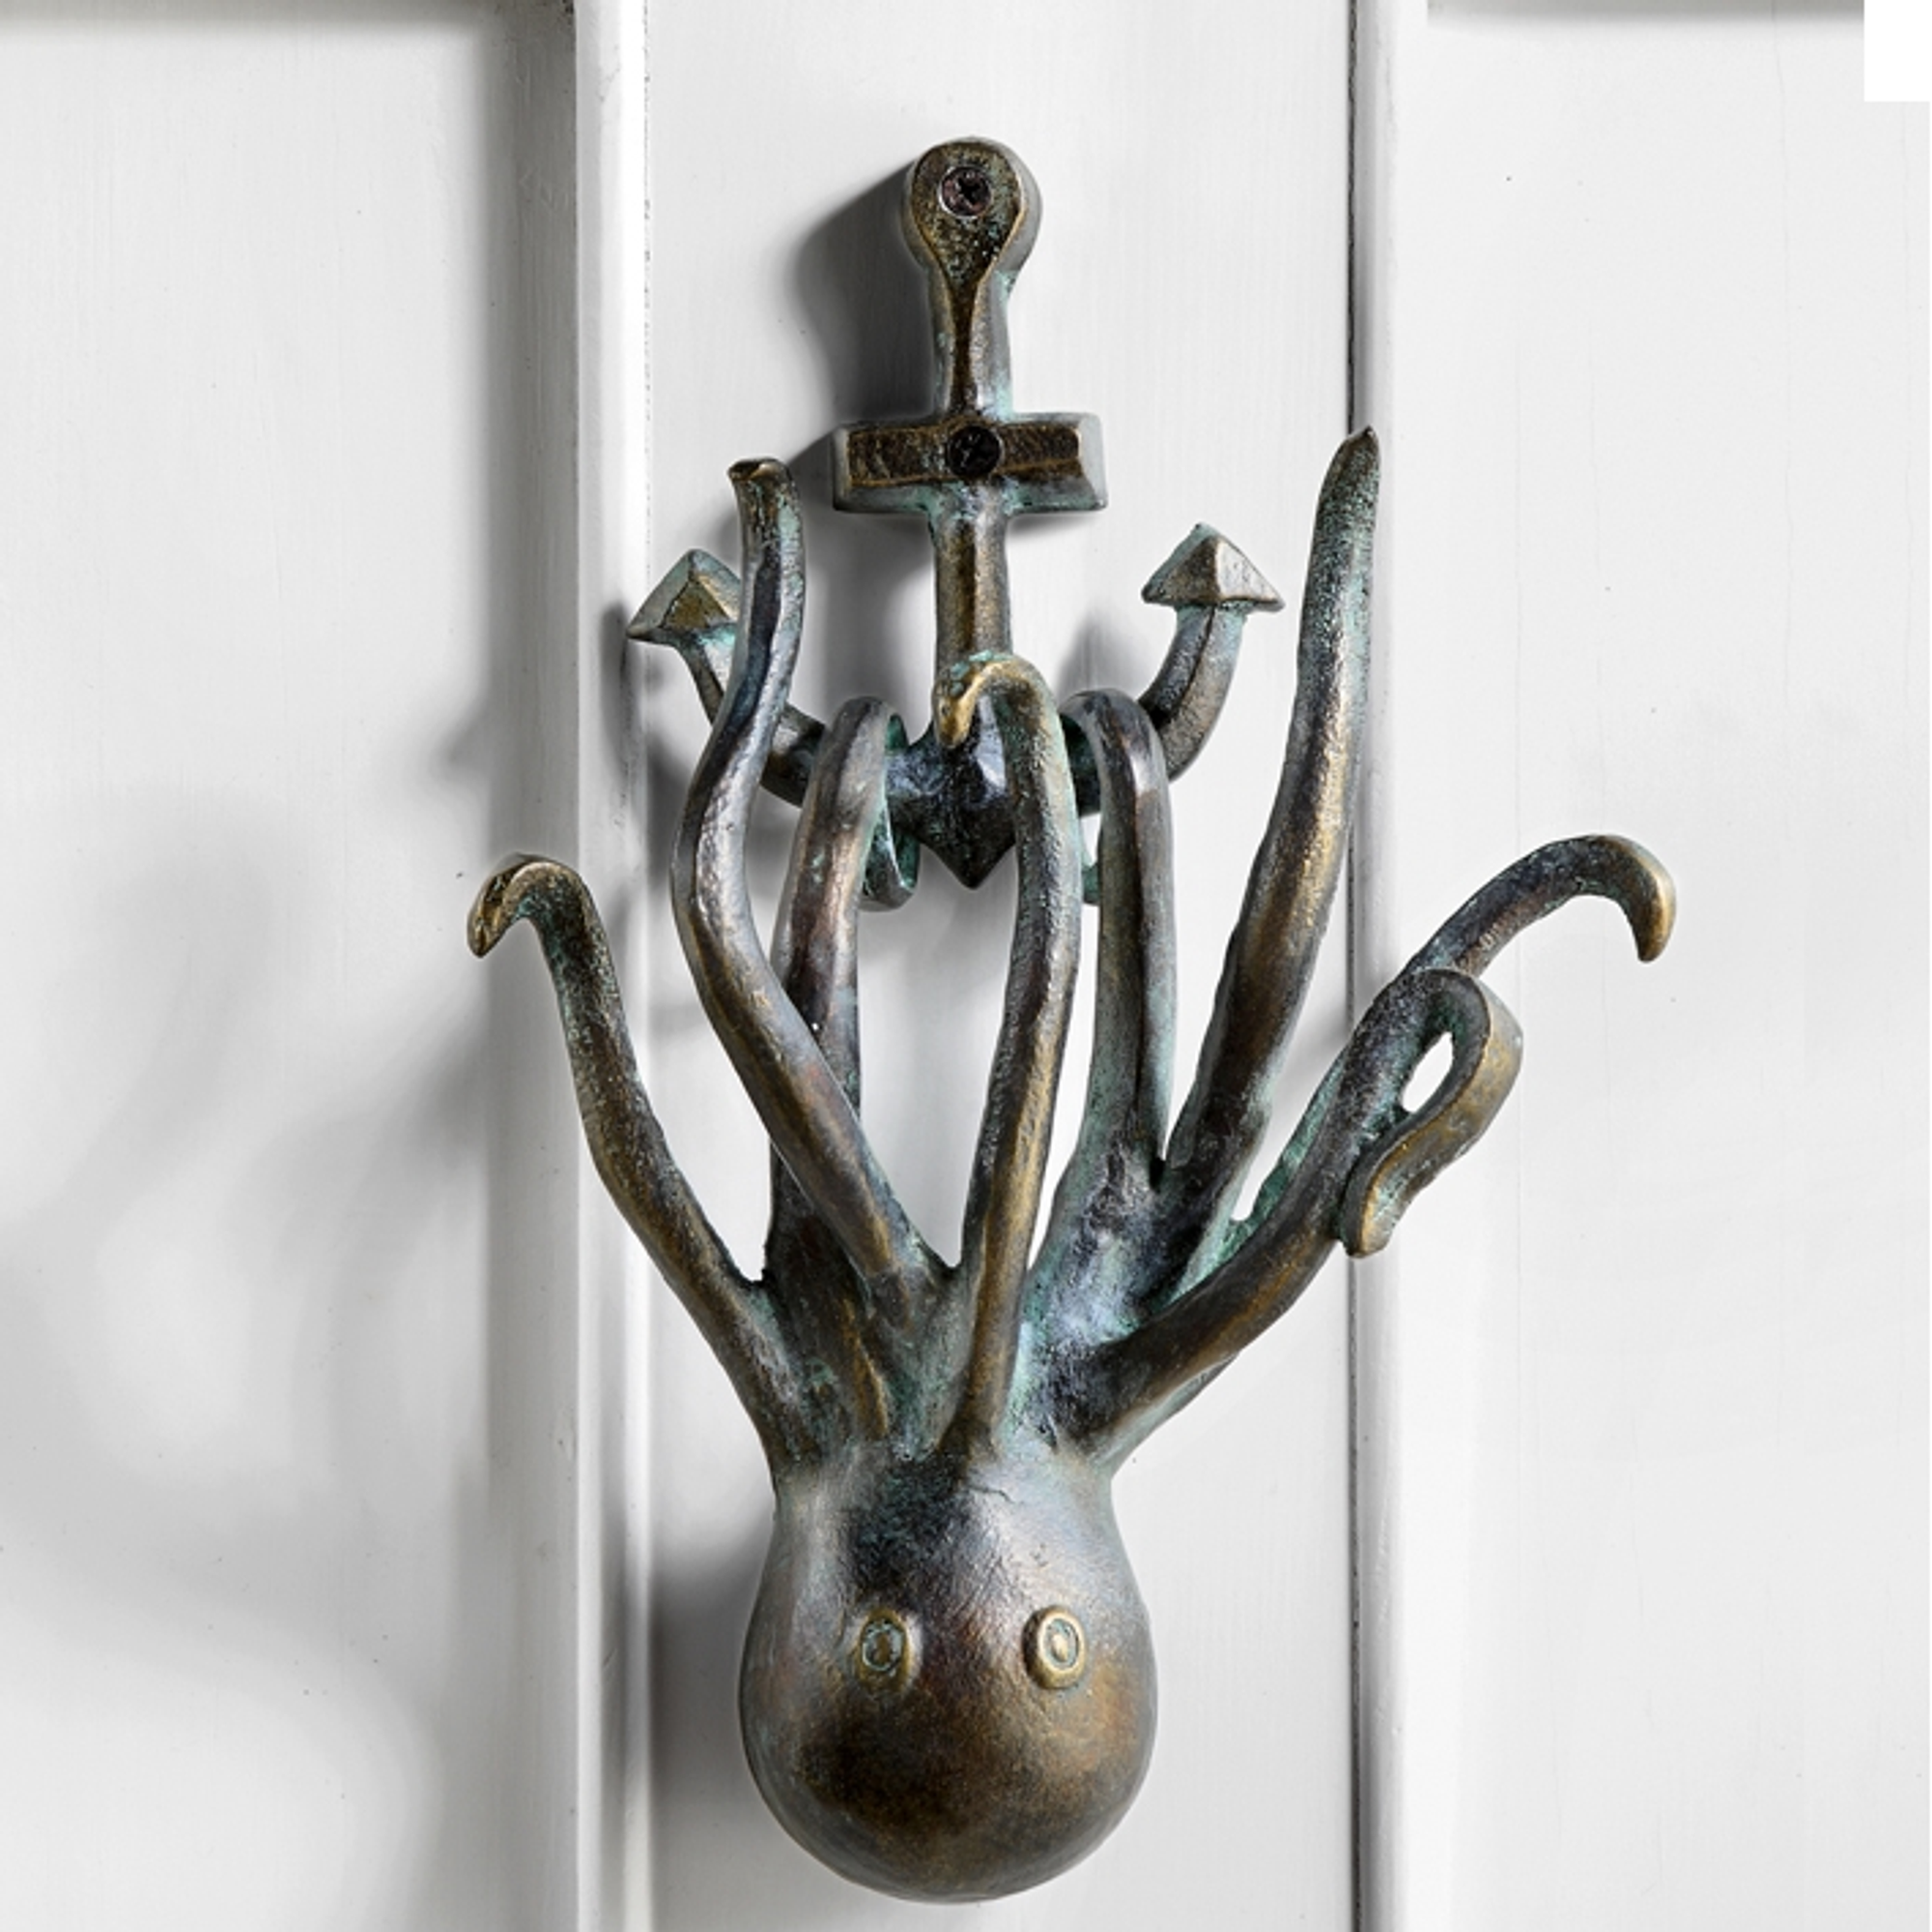 Octopus Door Knocker | 34252 Octopus Door Knocker | 34252